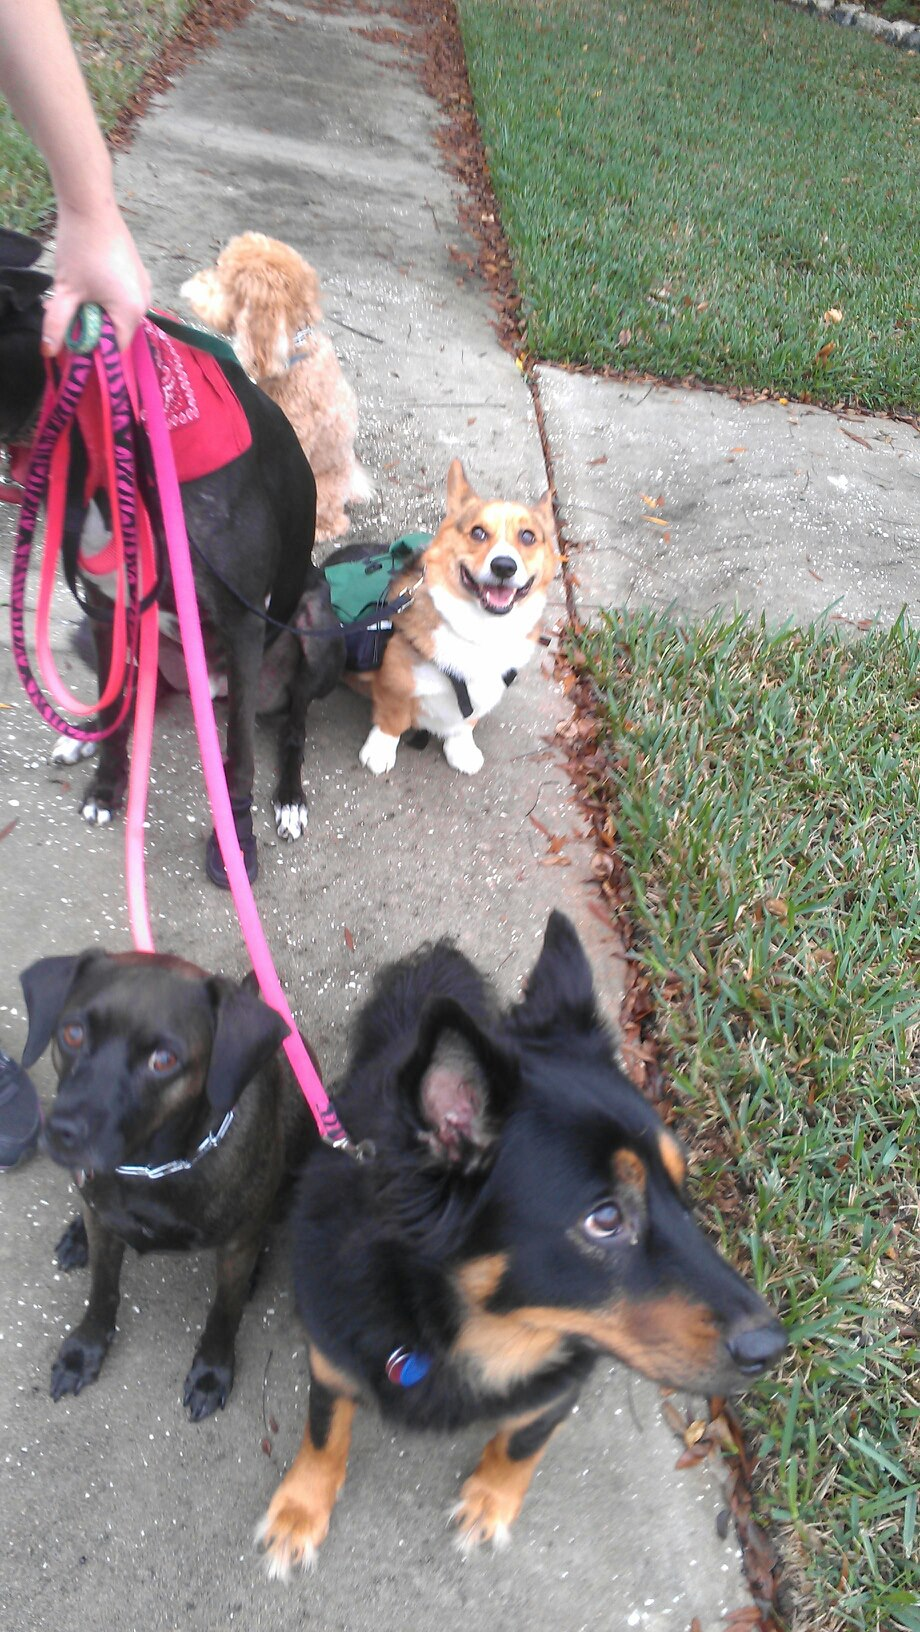 Taking 5 dogs on a pack walk